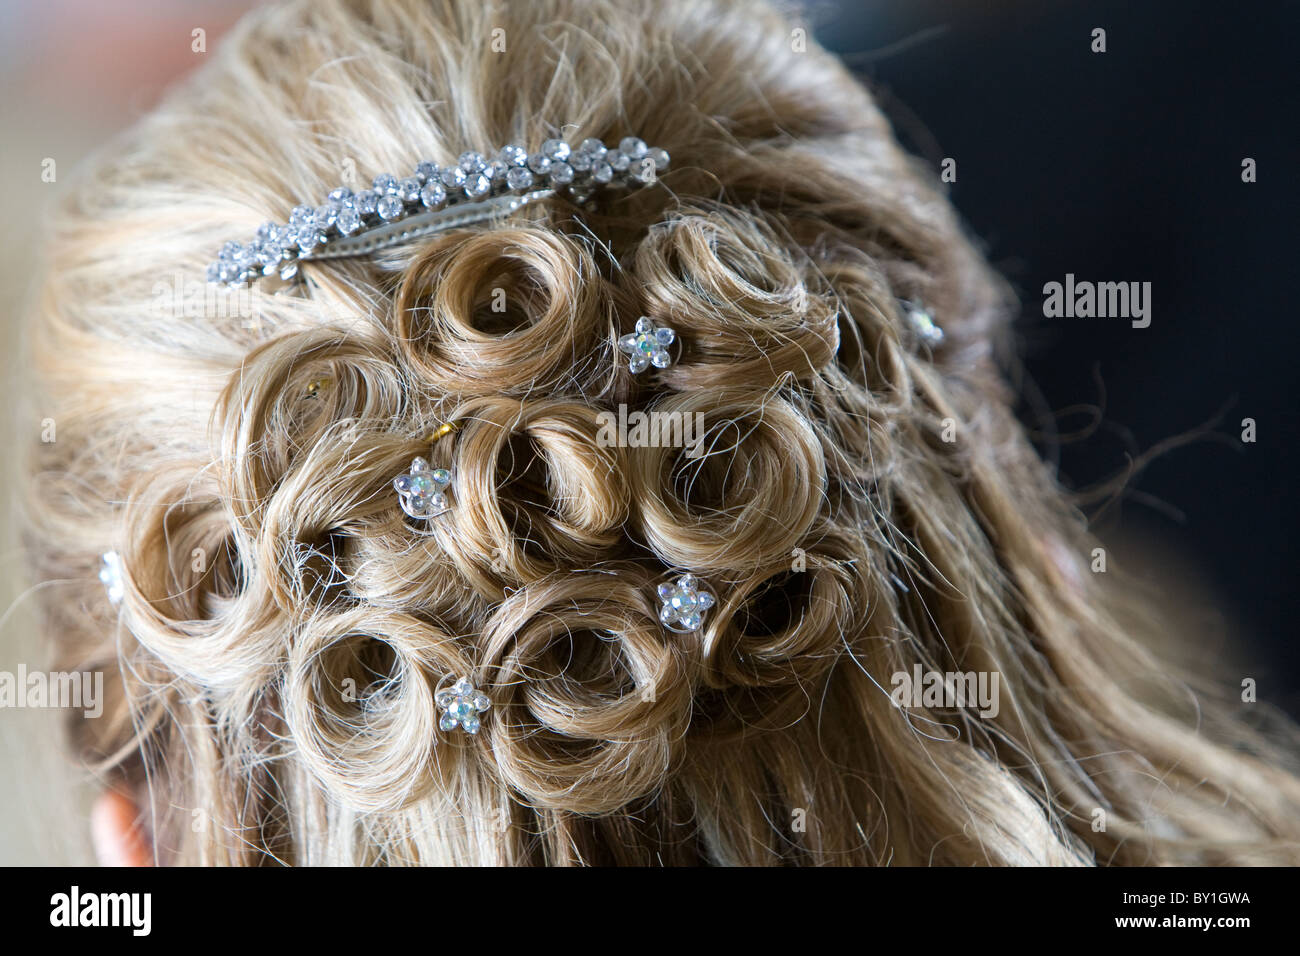 blonde bride's hairstyle of curls jewels and grips - Stock Image